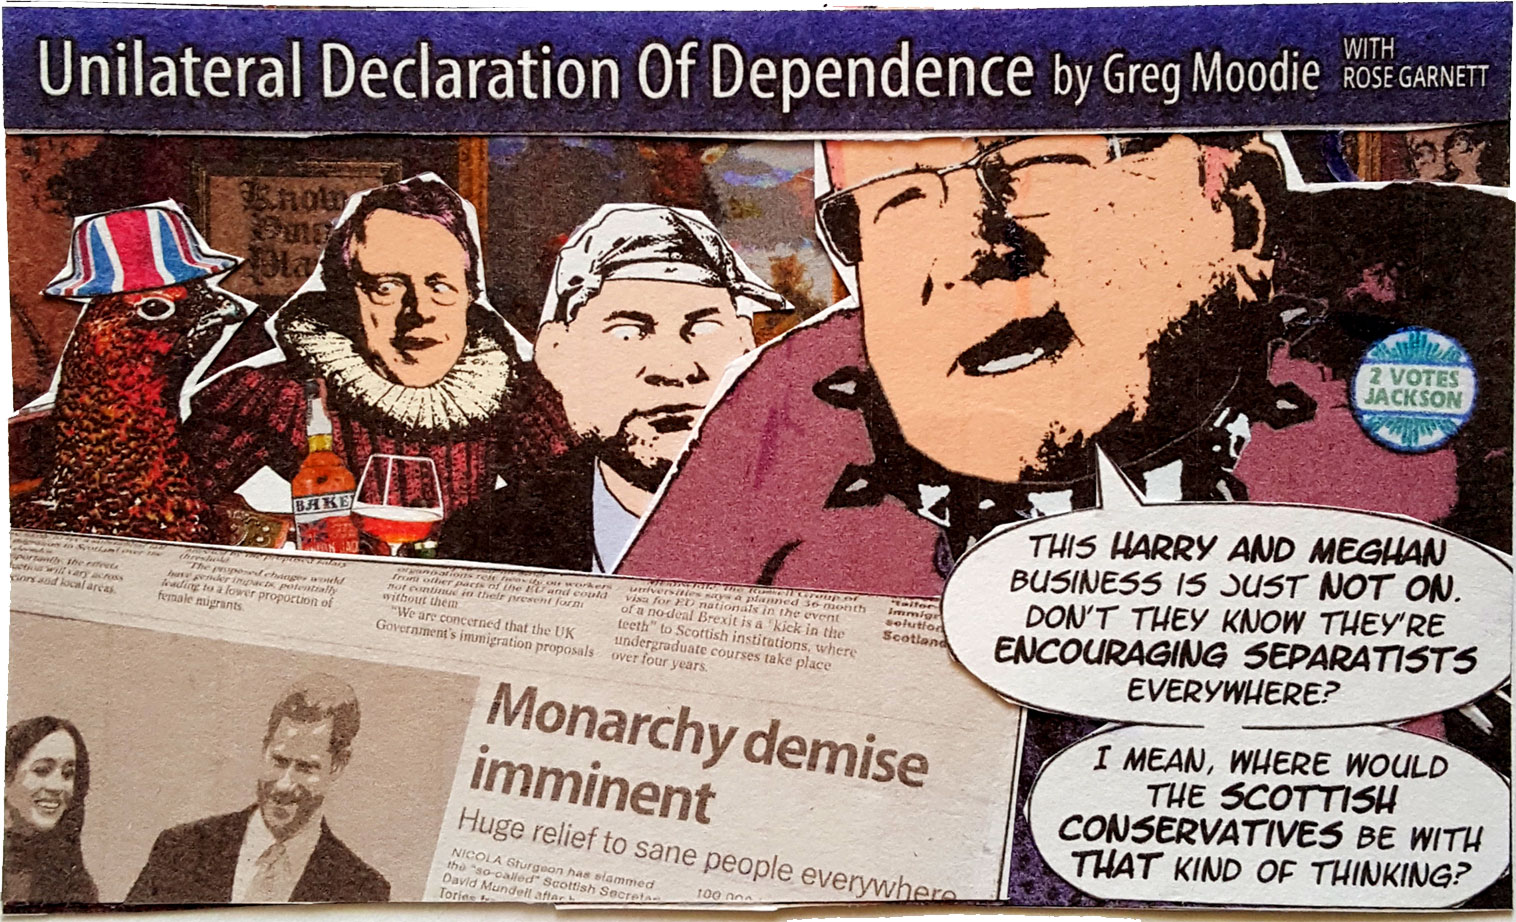 Unilateral Declaration Of Dependence